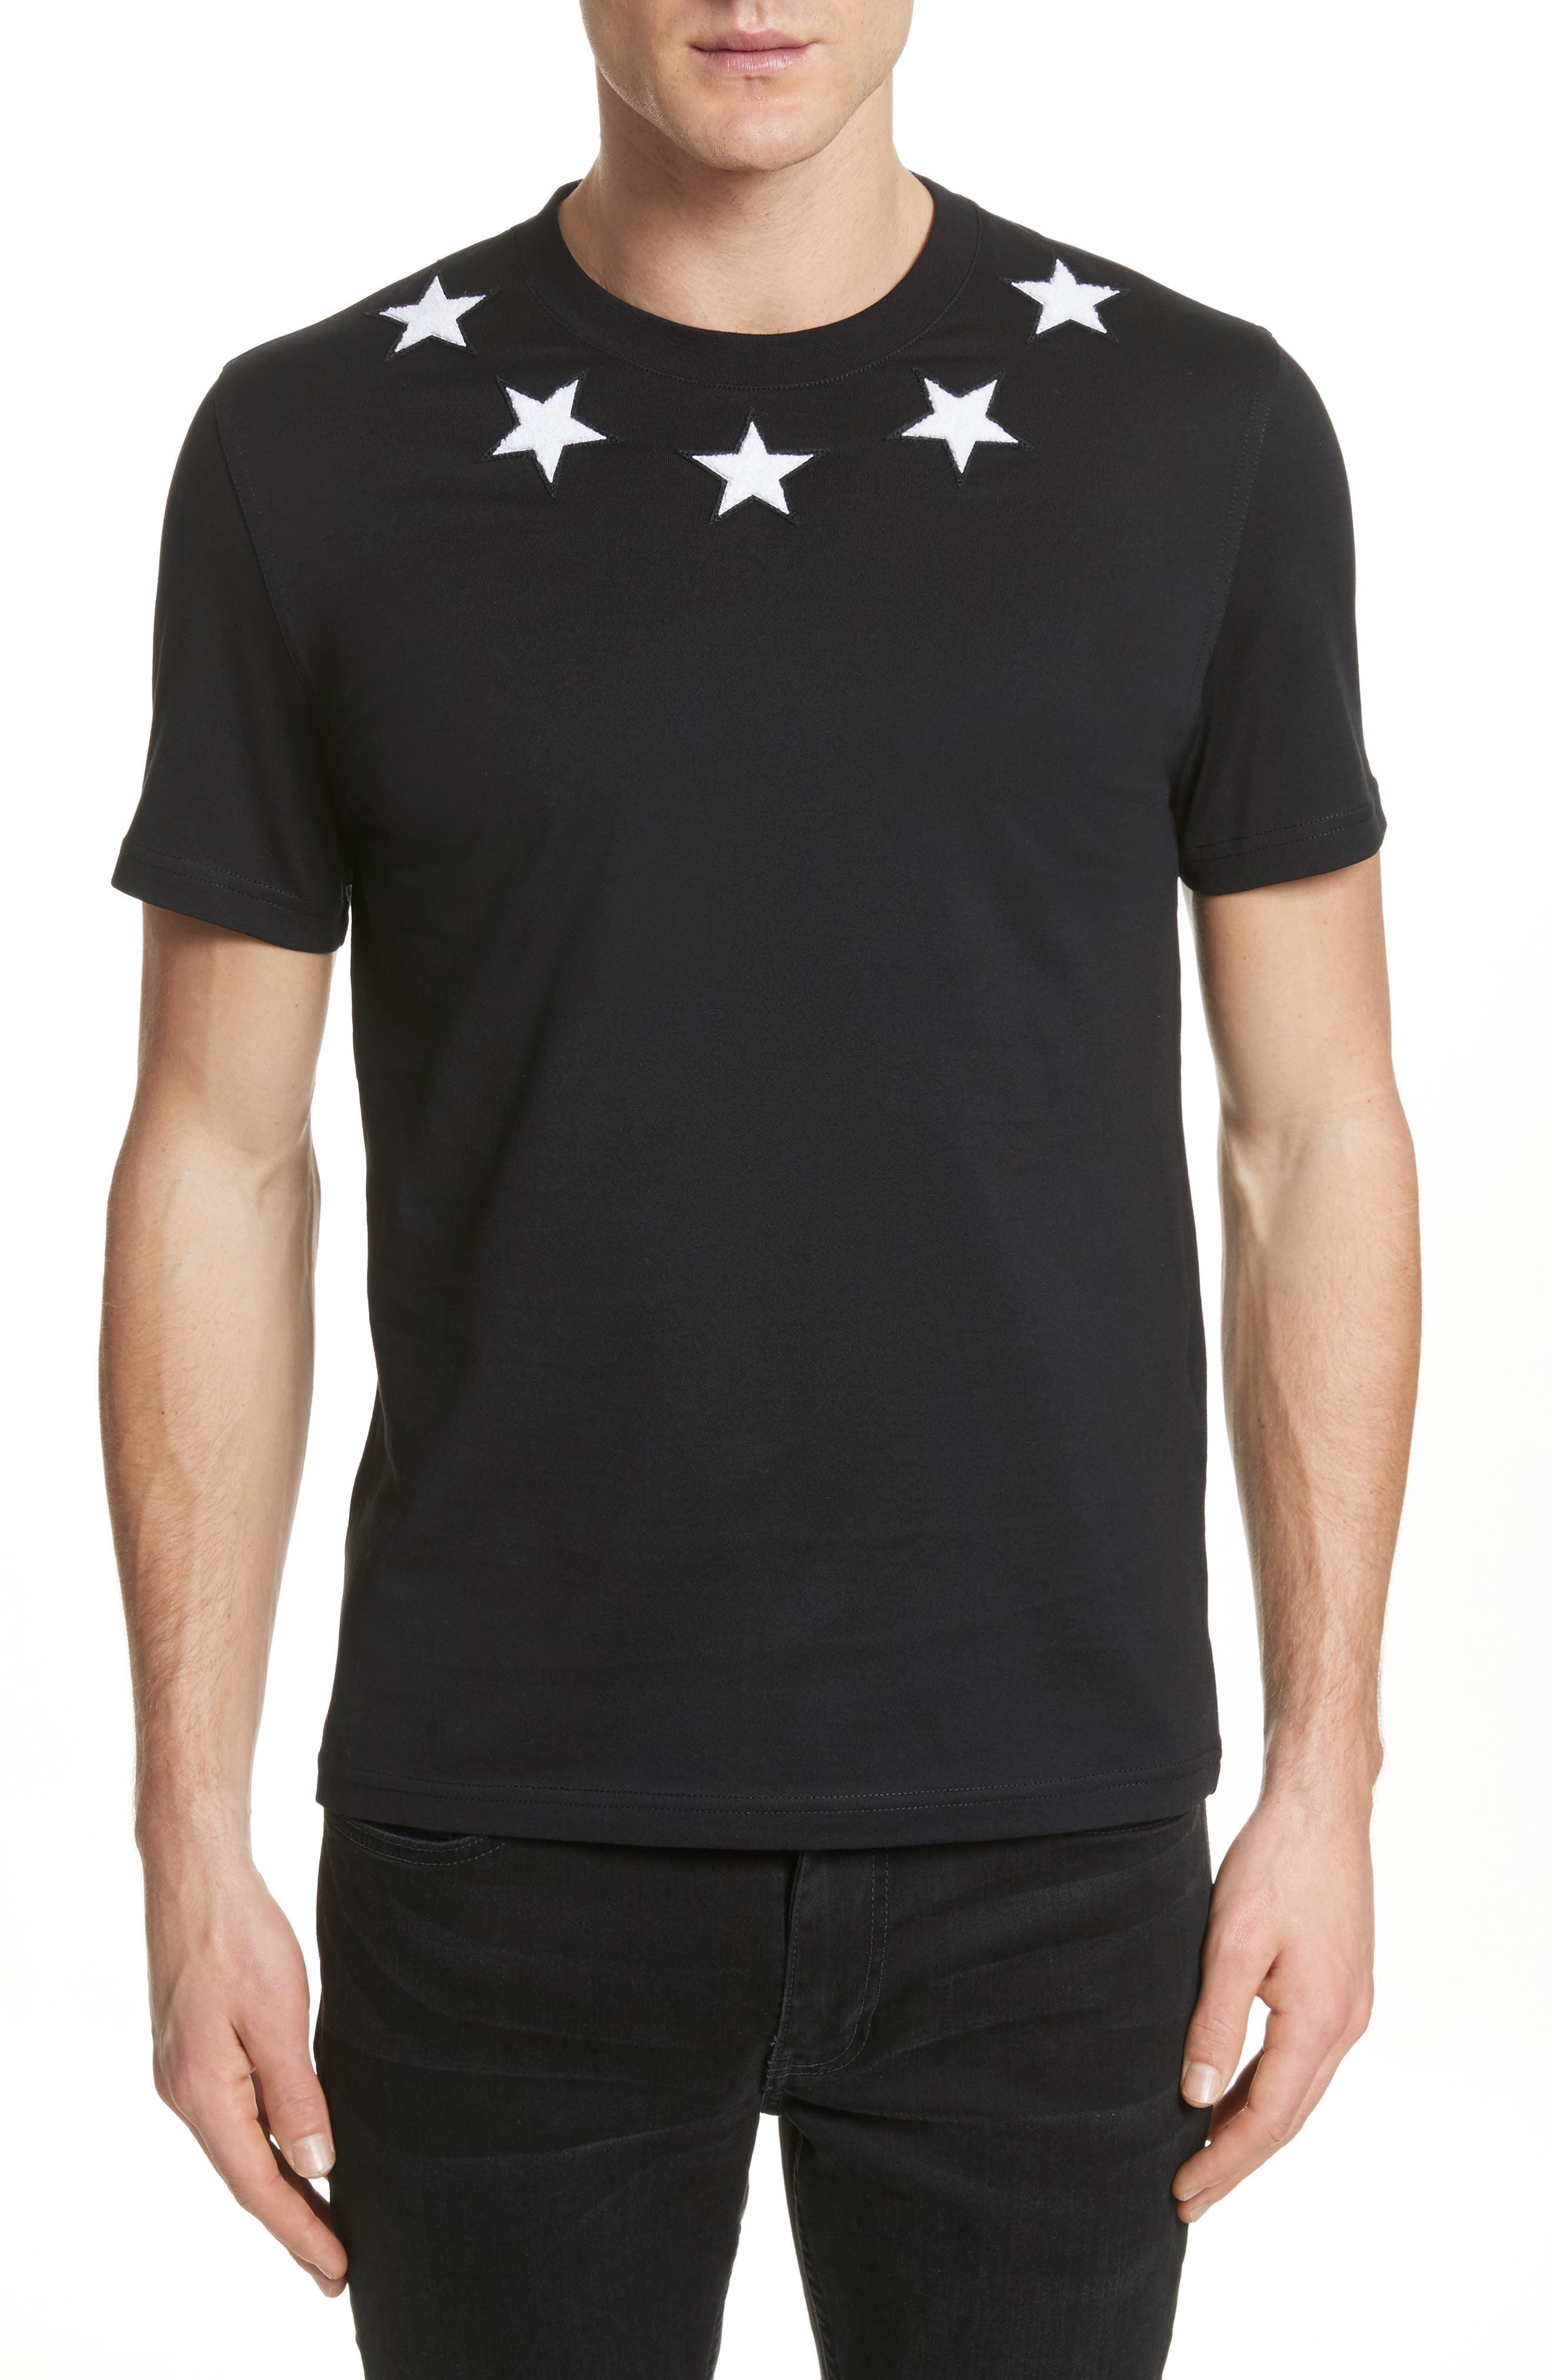 Alternate Image 1 Selected - Givenchy Star Appliqué T-Shirt